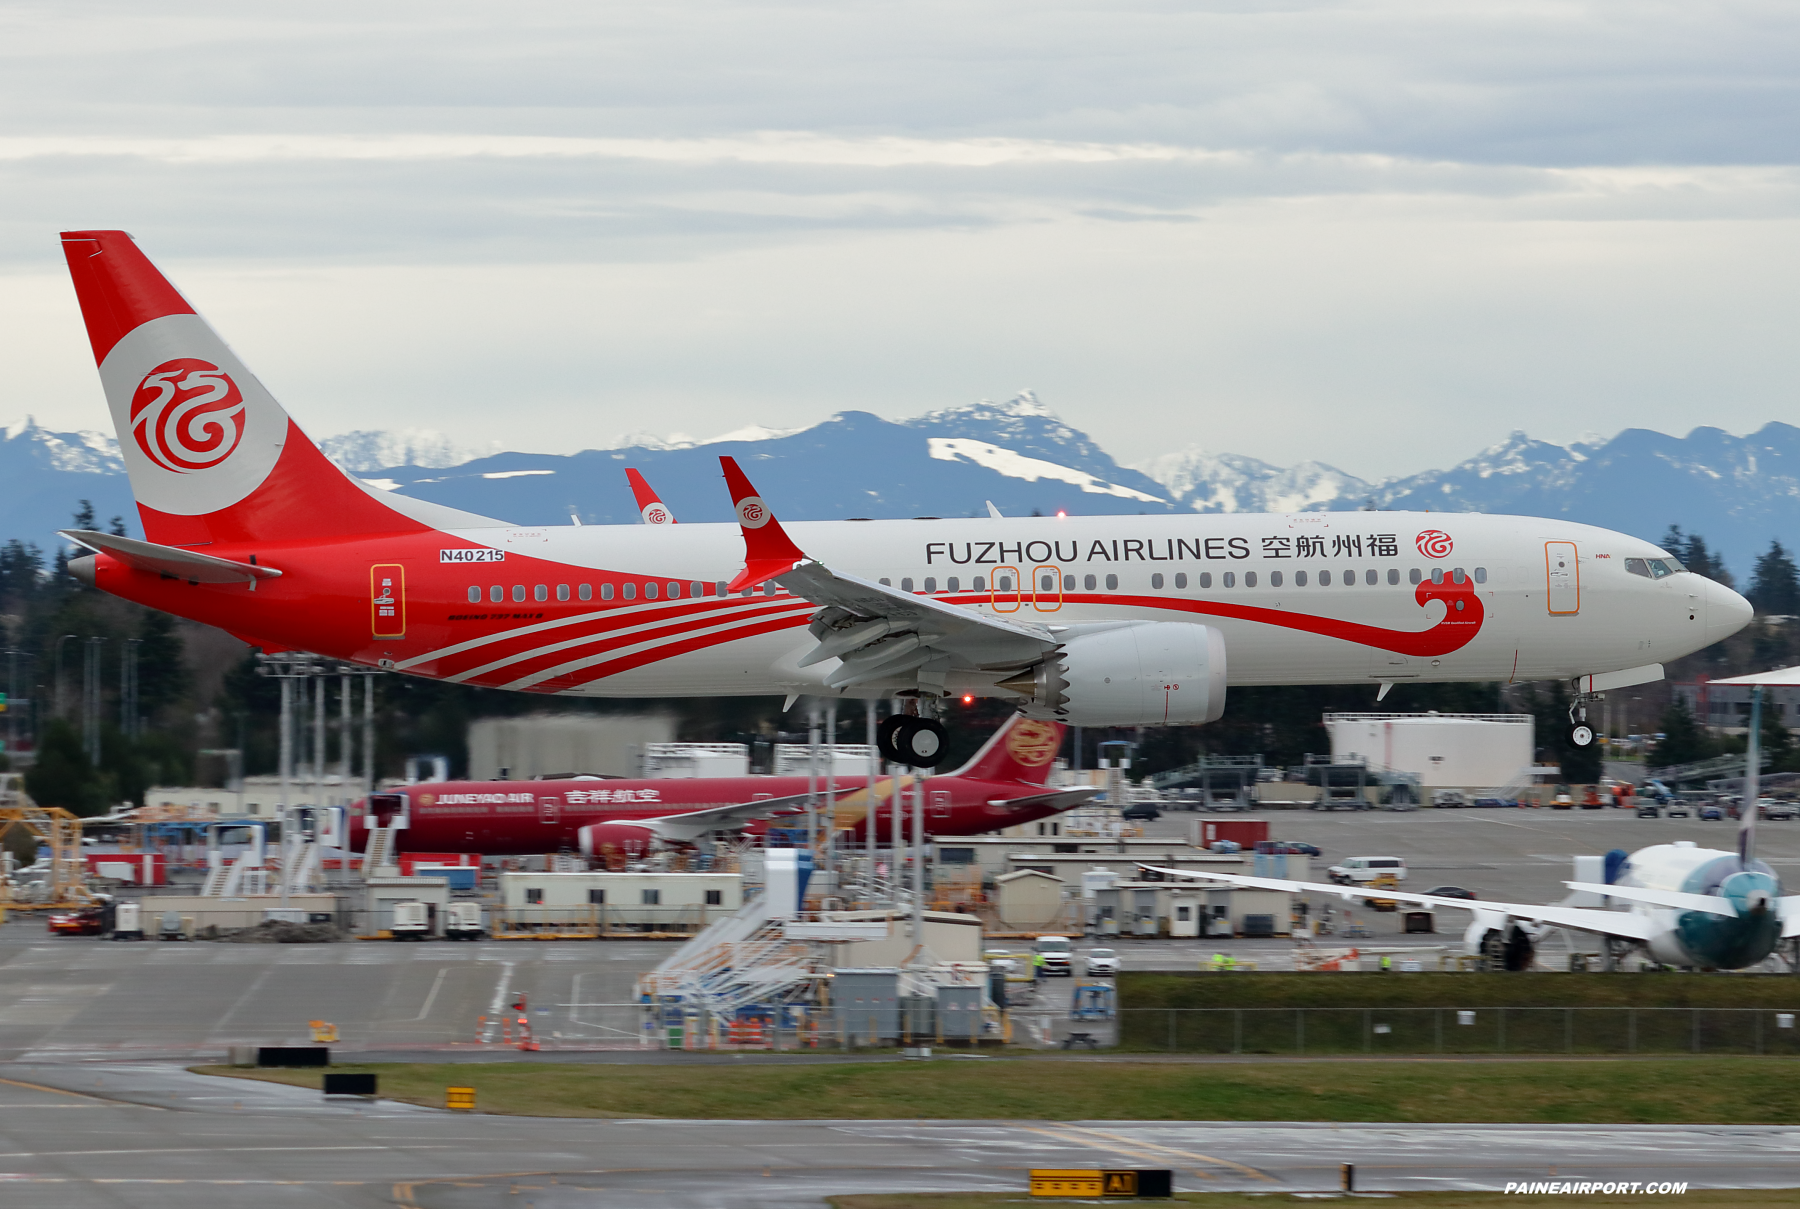 Fuzhou Airlines 737 N40215 at Paine Field